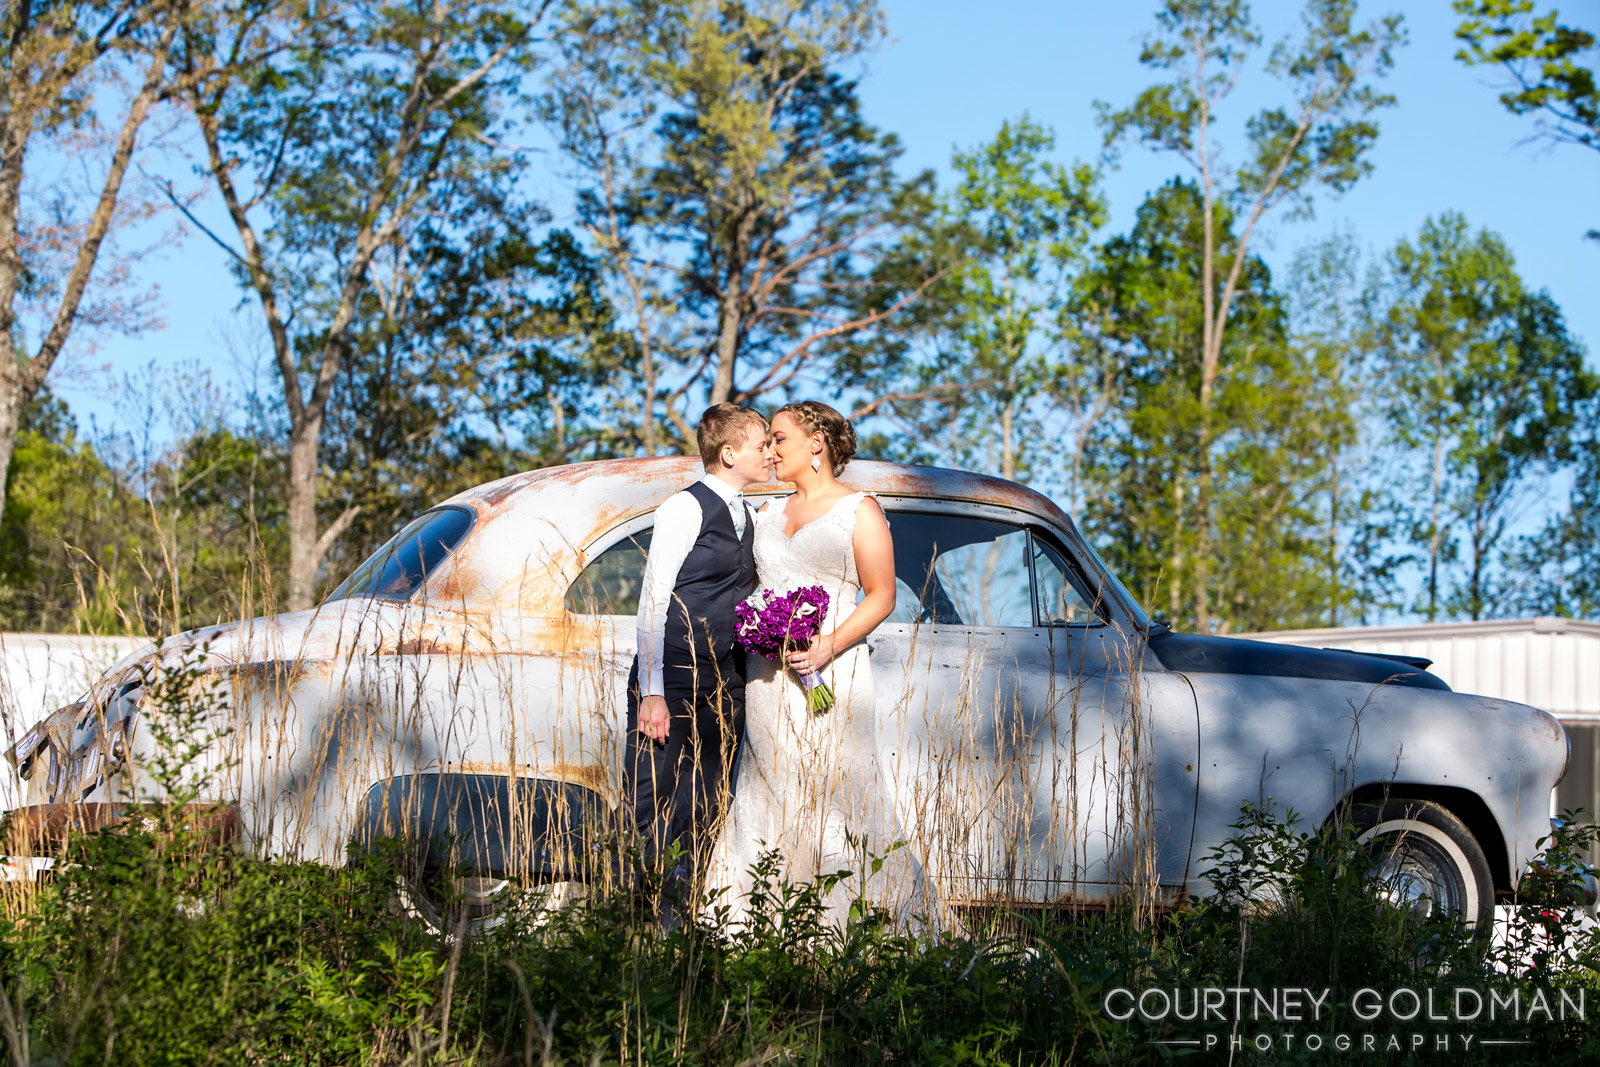 Atlanta-Wedding-Photography-by-Courtney-Goldman-31.jpg